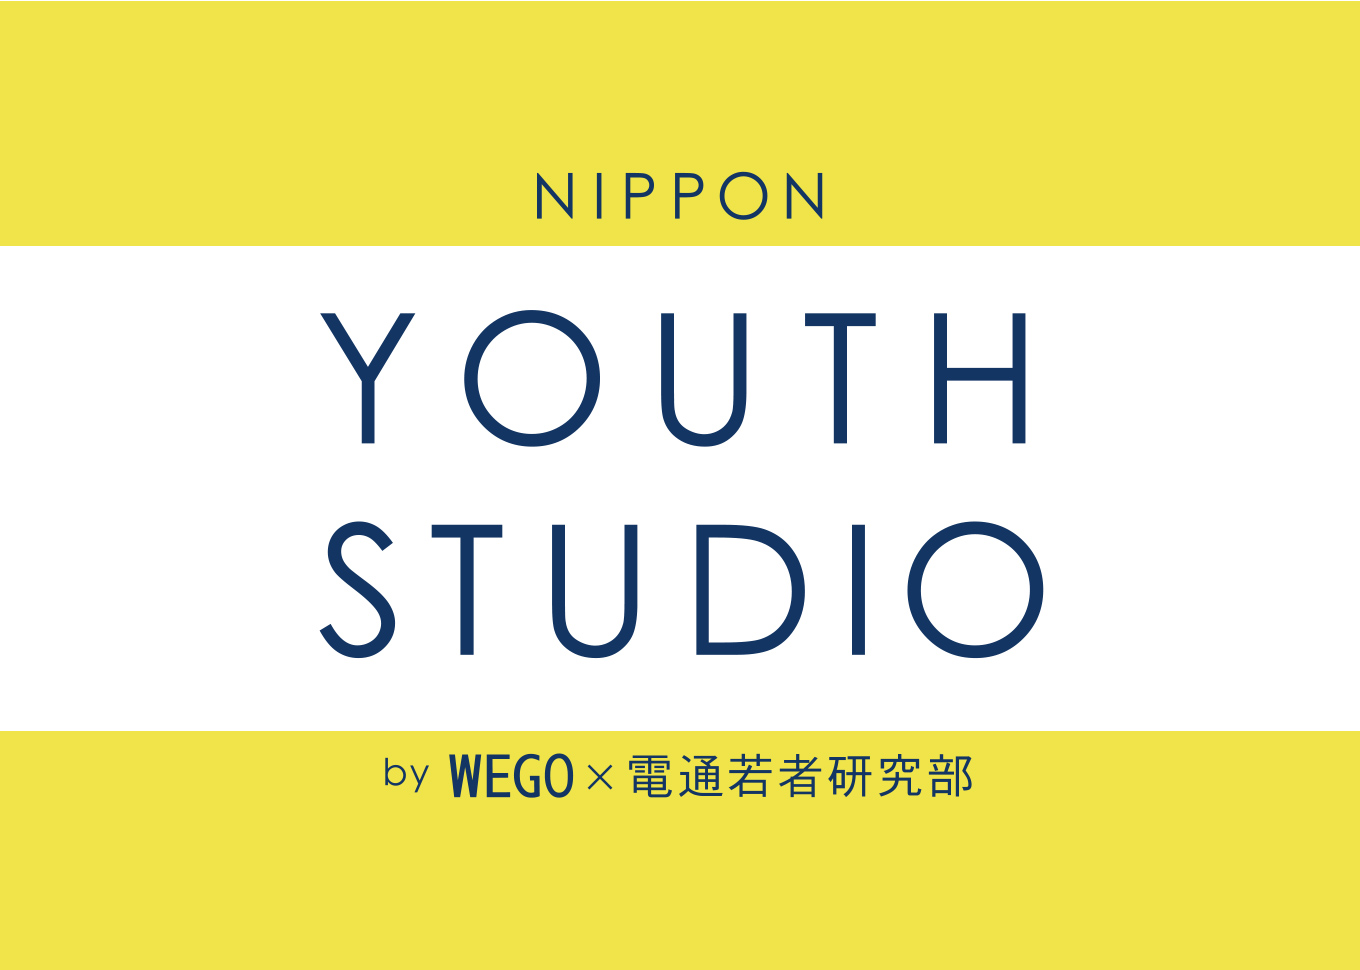 電通×WEGO / NIPPON YOUTH STUDIO